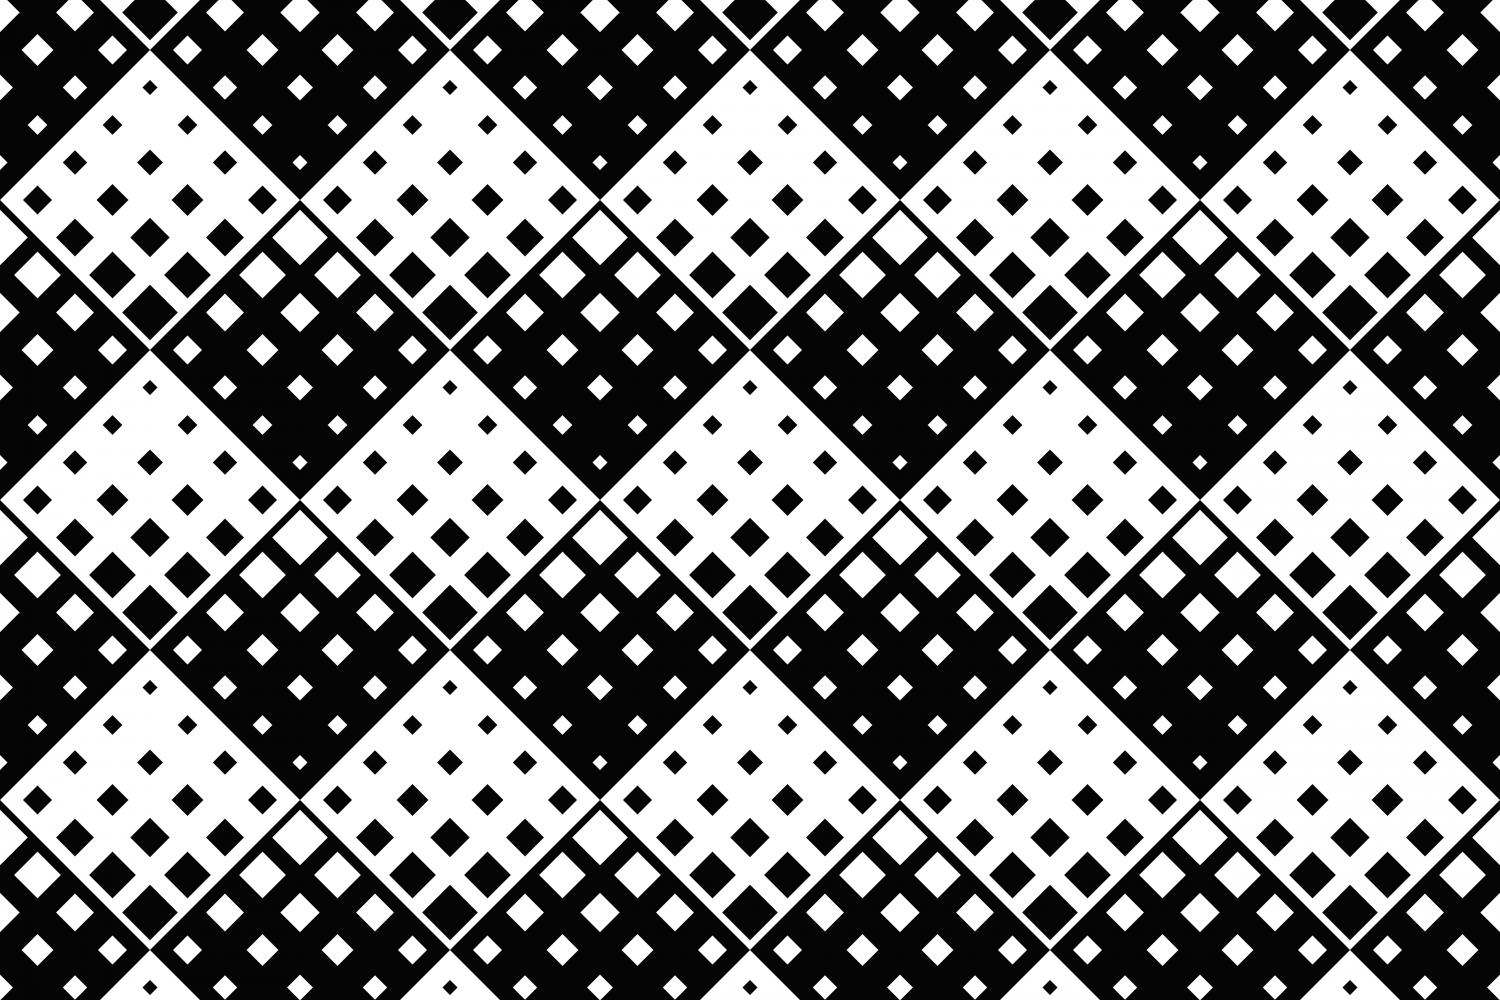 24 Seamless Square Patterns example image 15